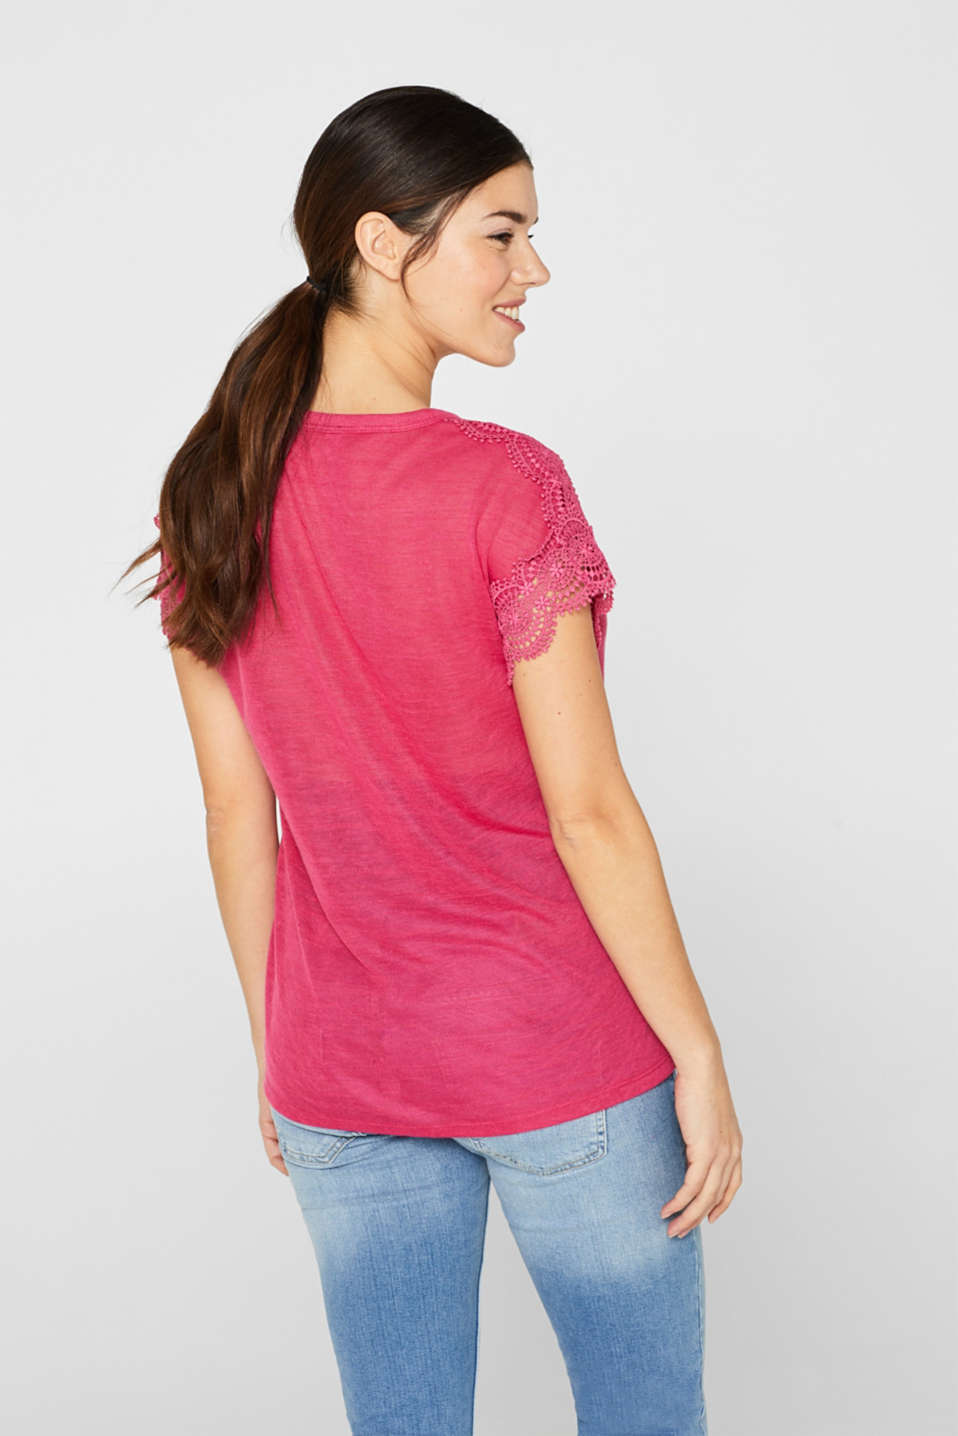 Lace-trimmed slub tee, LCPINK FUCHSIA, detail image number 3